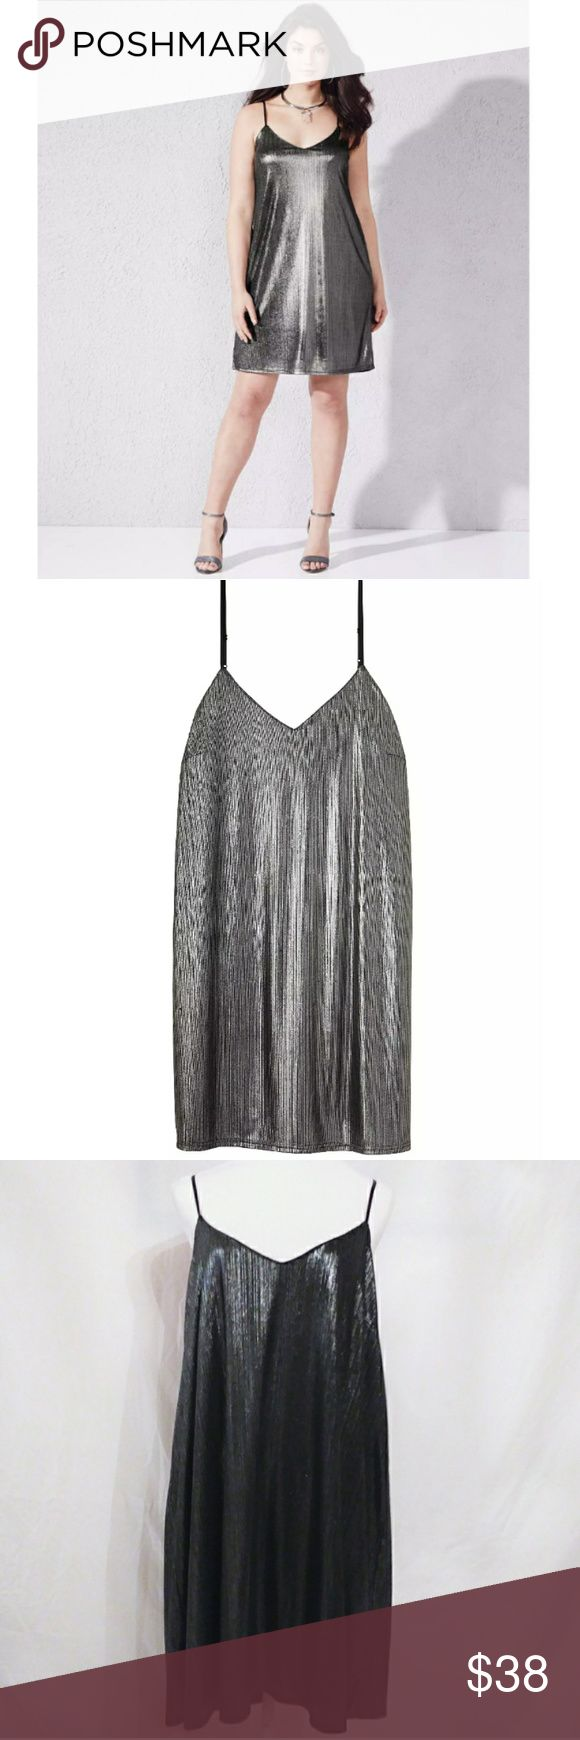 "Silver & Grey Metallic Cami Dress Silver & Grey Metallic Cami Dress size - 16. Beautiful metallic silver/grey stretch fabric with a v-neck front, adjustable straps, and fully lined. Measures 35"", 93% polyester, 7% spandex. Pair this with your favorite metallic heels to finish your look! Simply Be Dresses Mini"